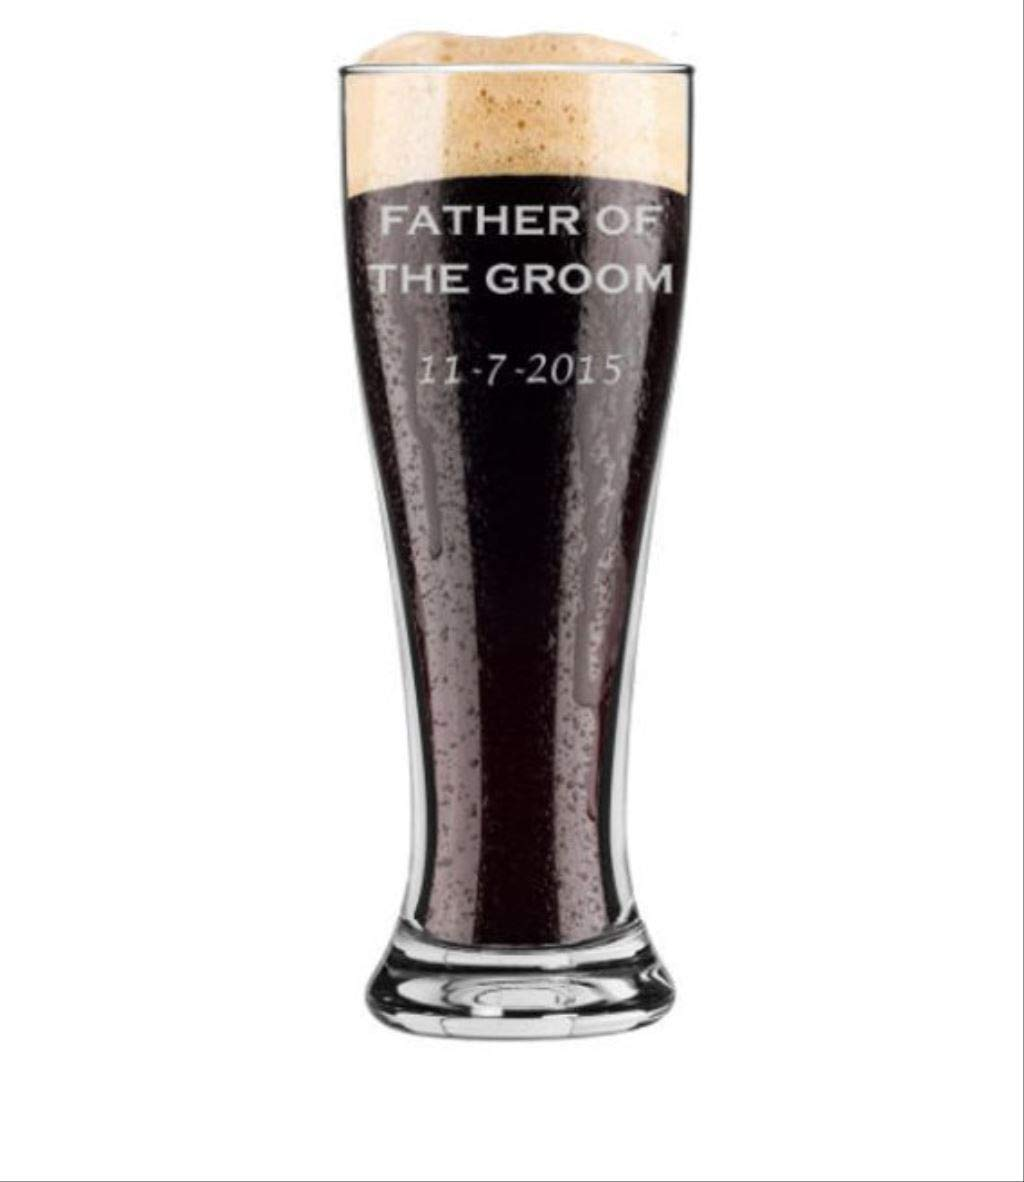 Father of the Groom - Pilsner 16 oz Pint Beer Glass - Choice of Date - Personalized Custom Engraved - Bridal Party, Wedding Gift